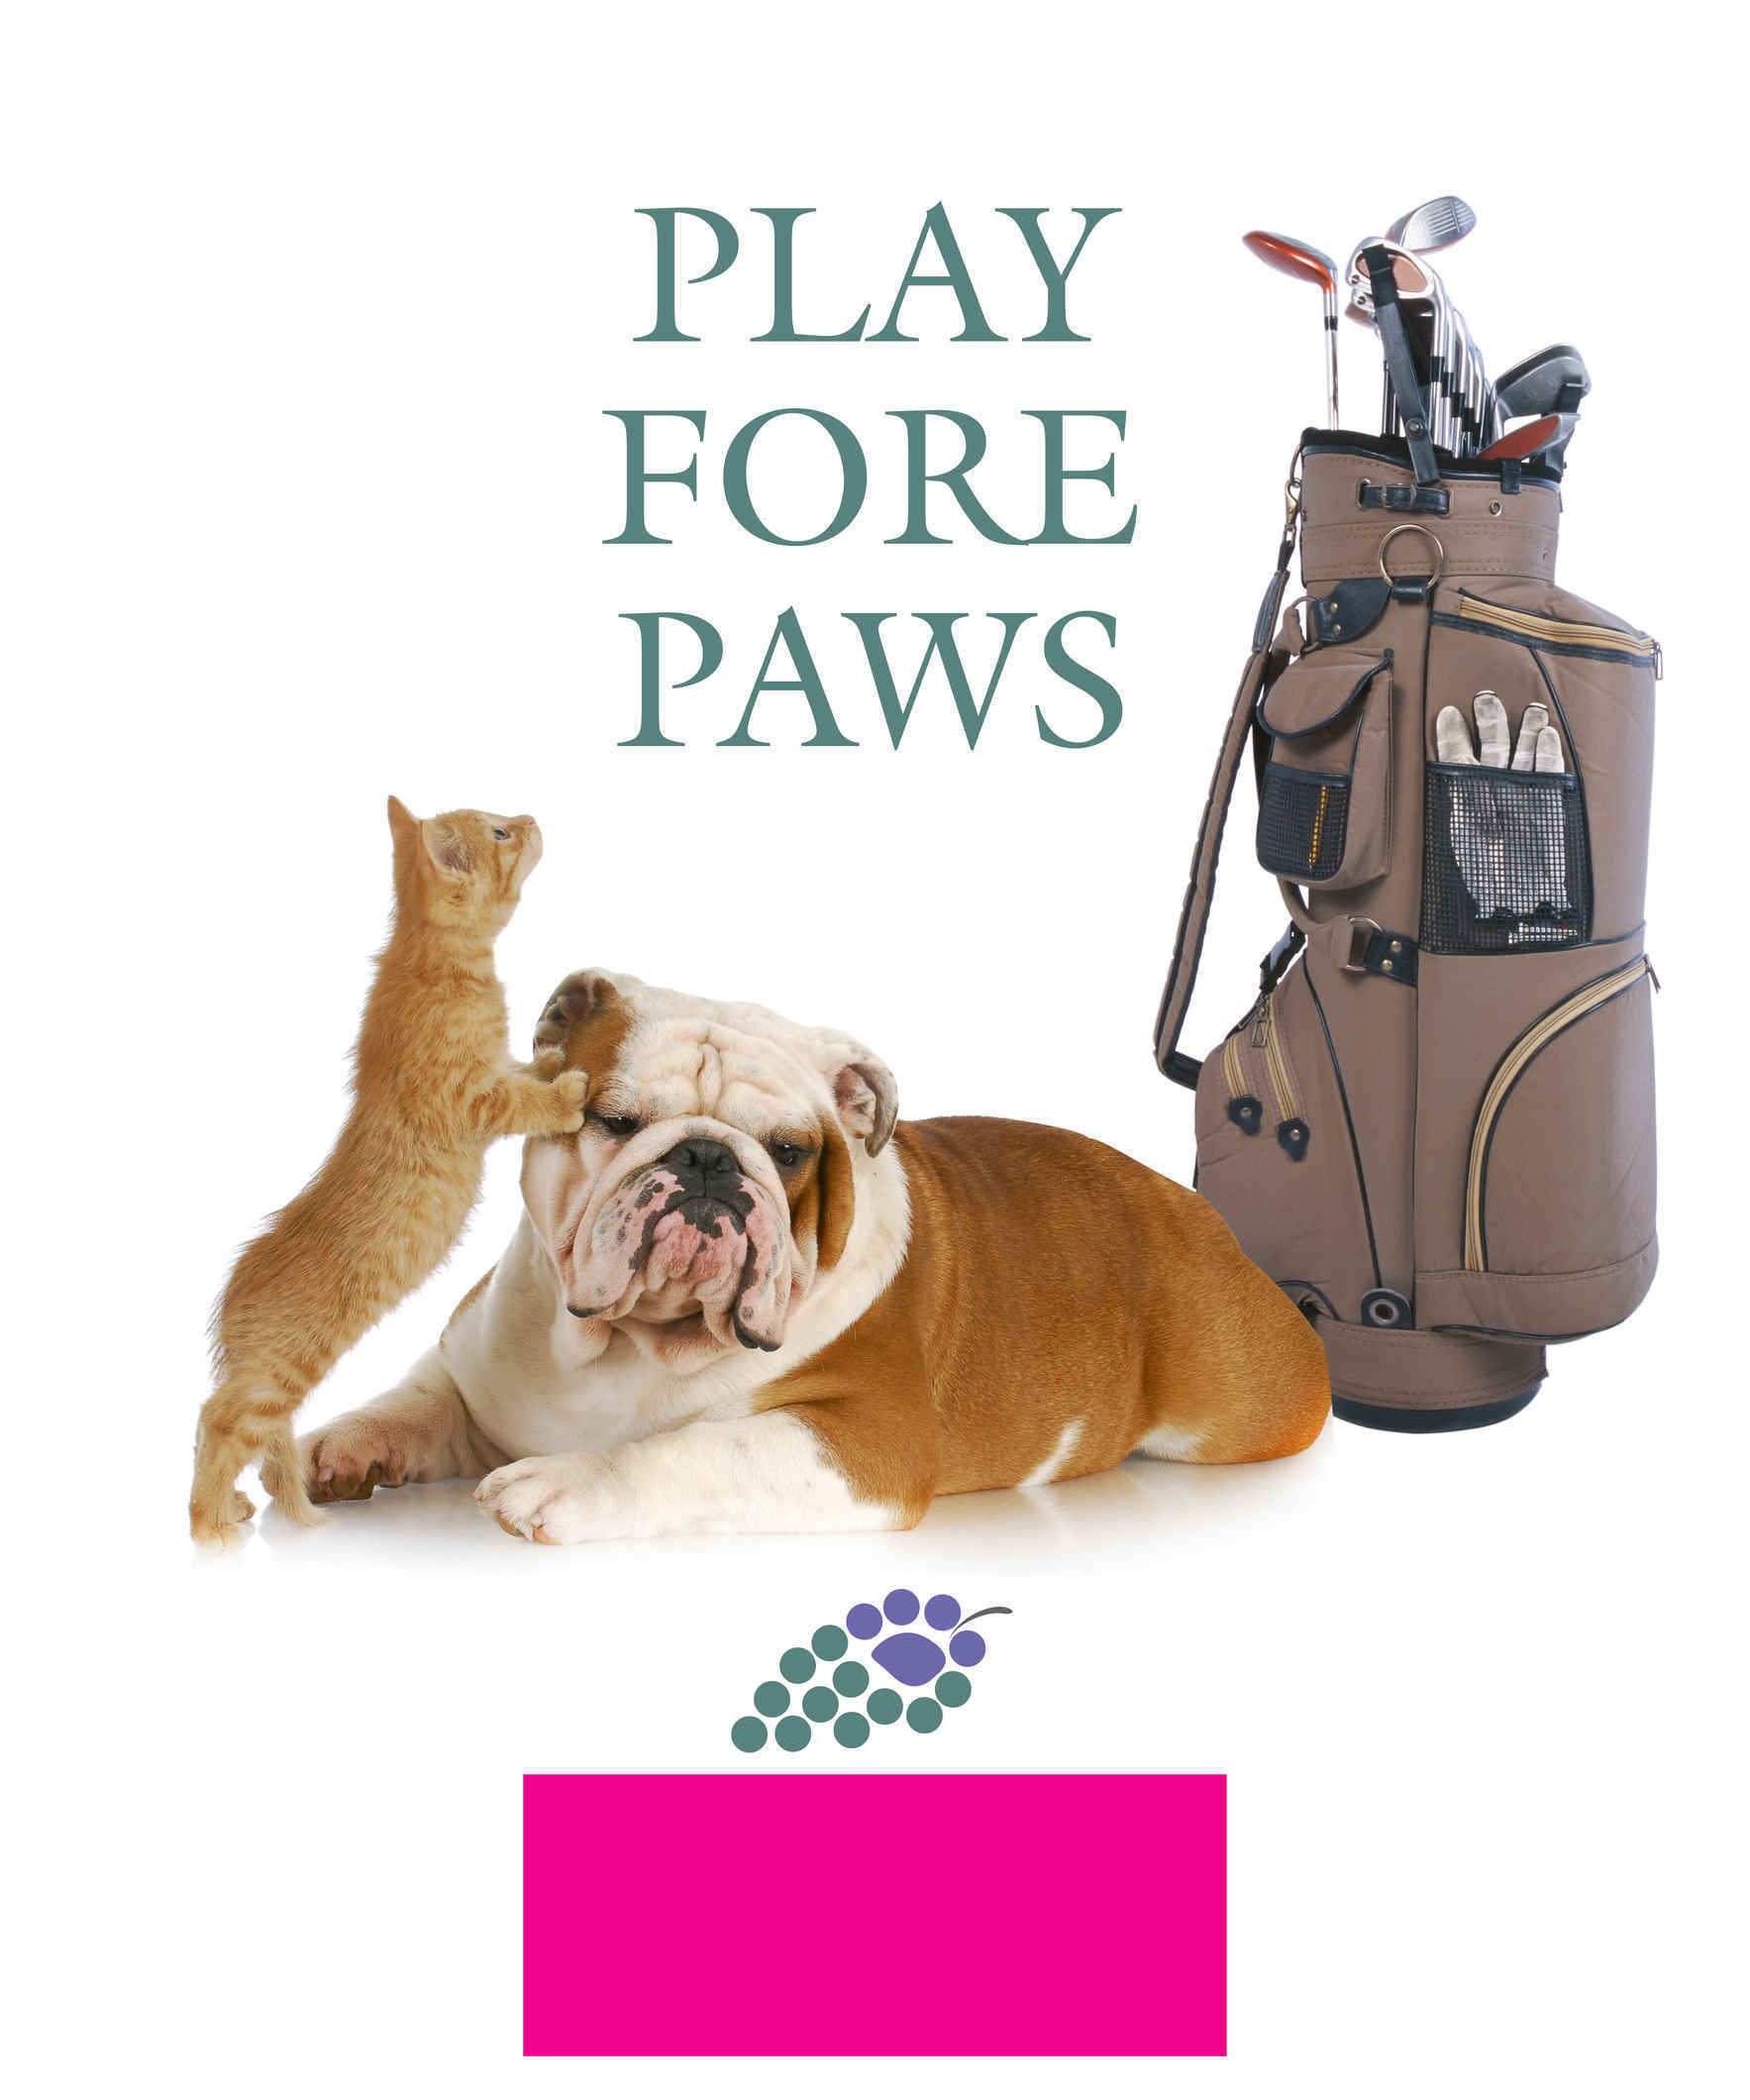 PLAY FORE PAWS image